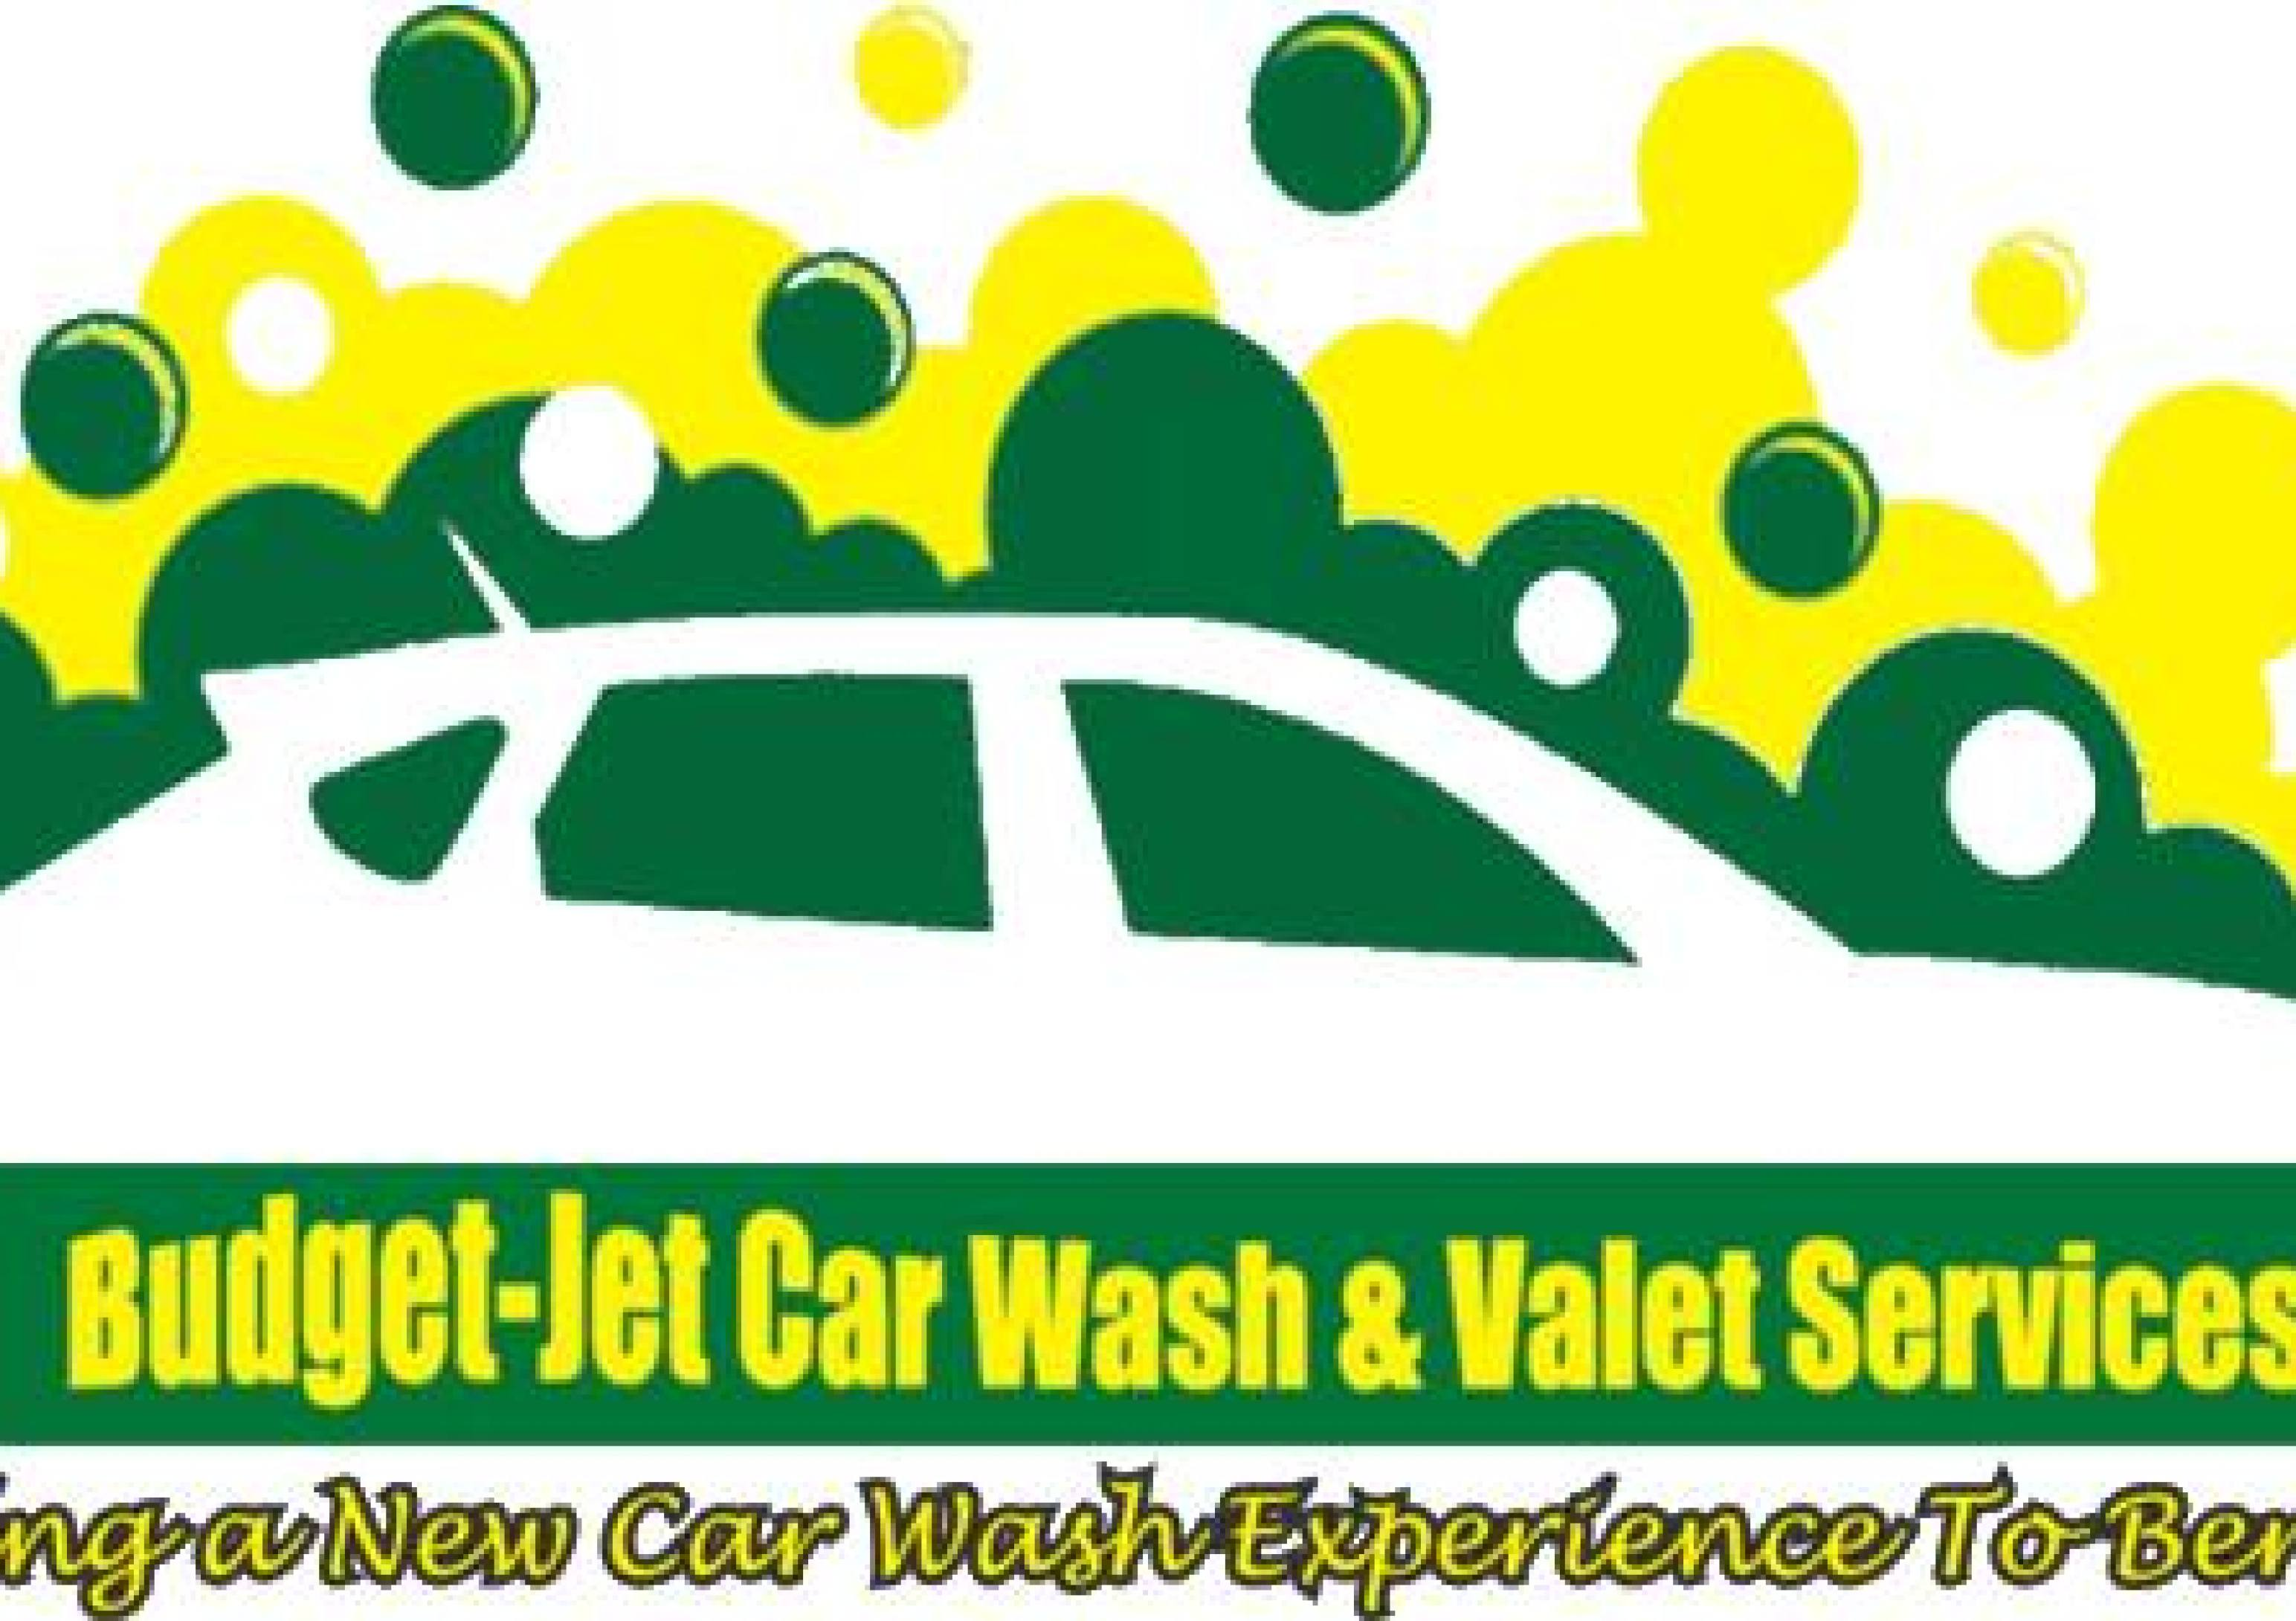 Budget-Jet Car Wash & Valet Services